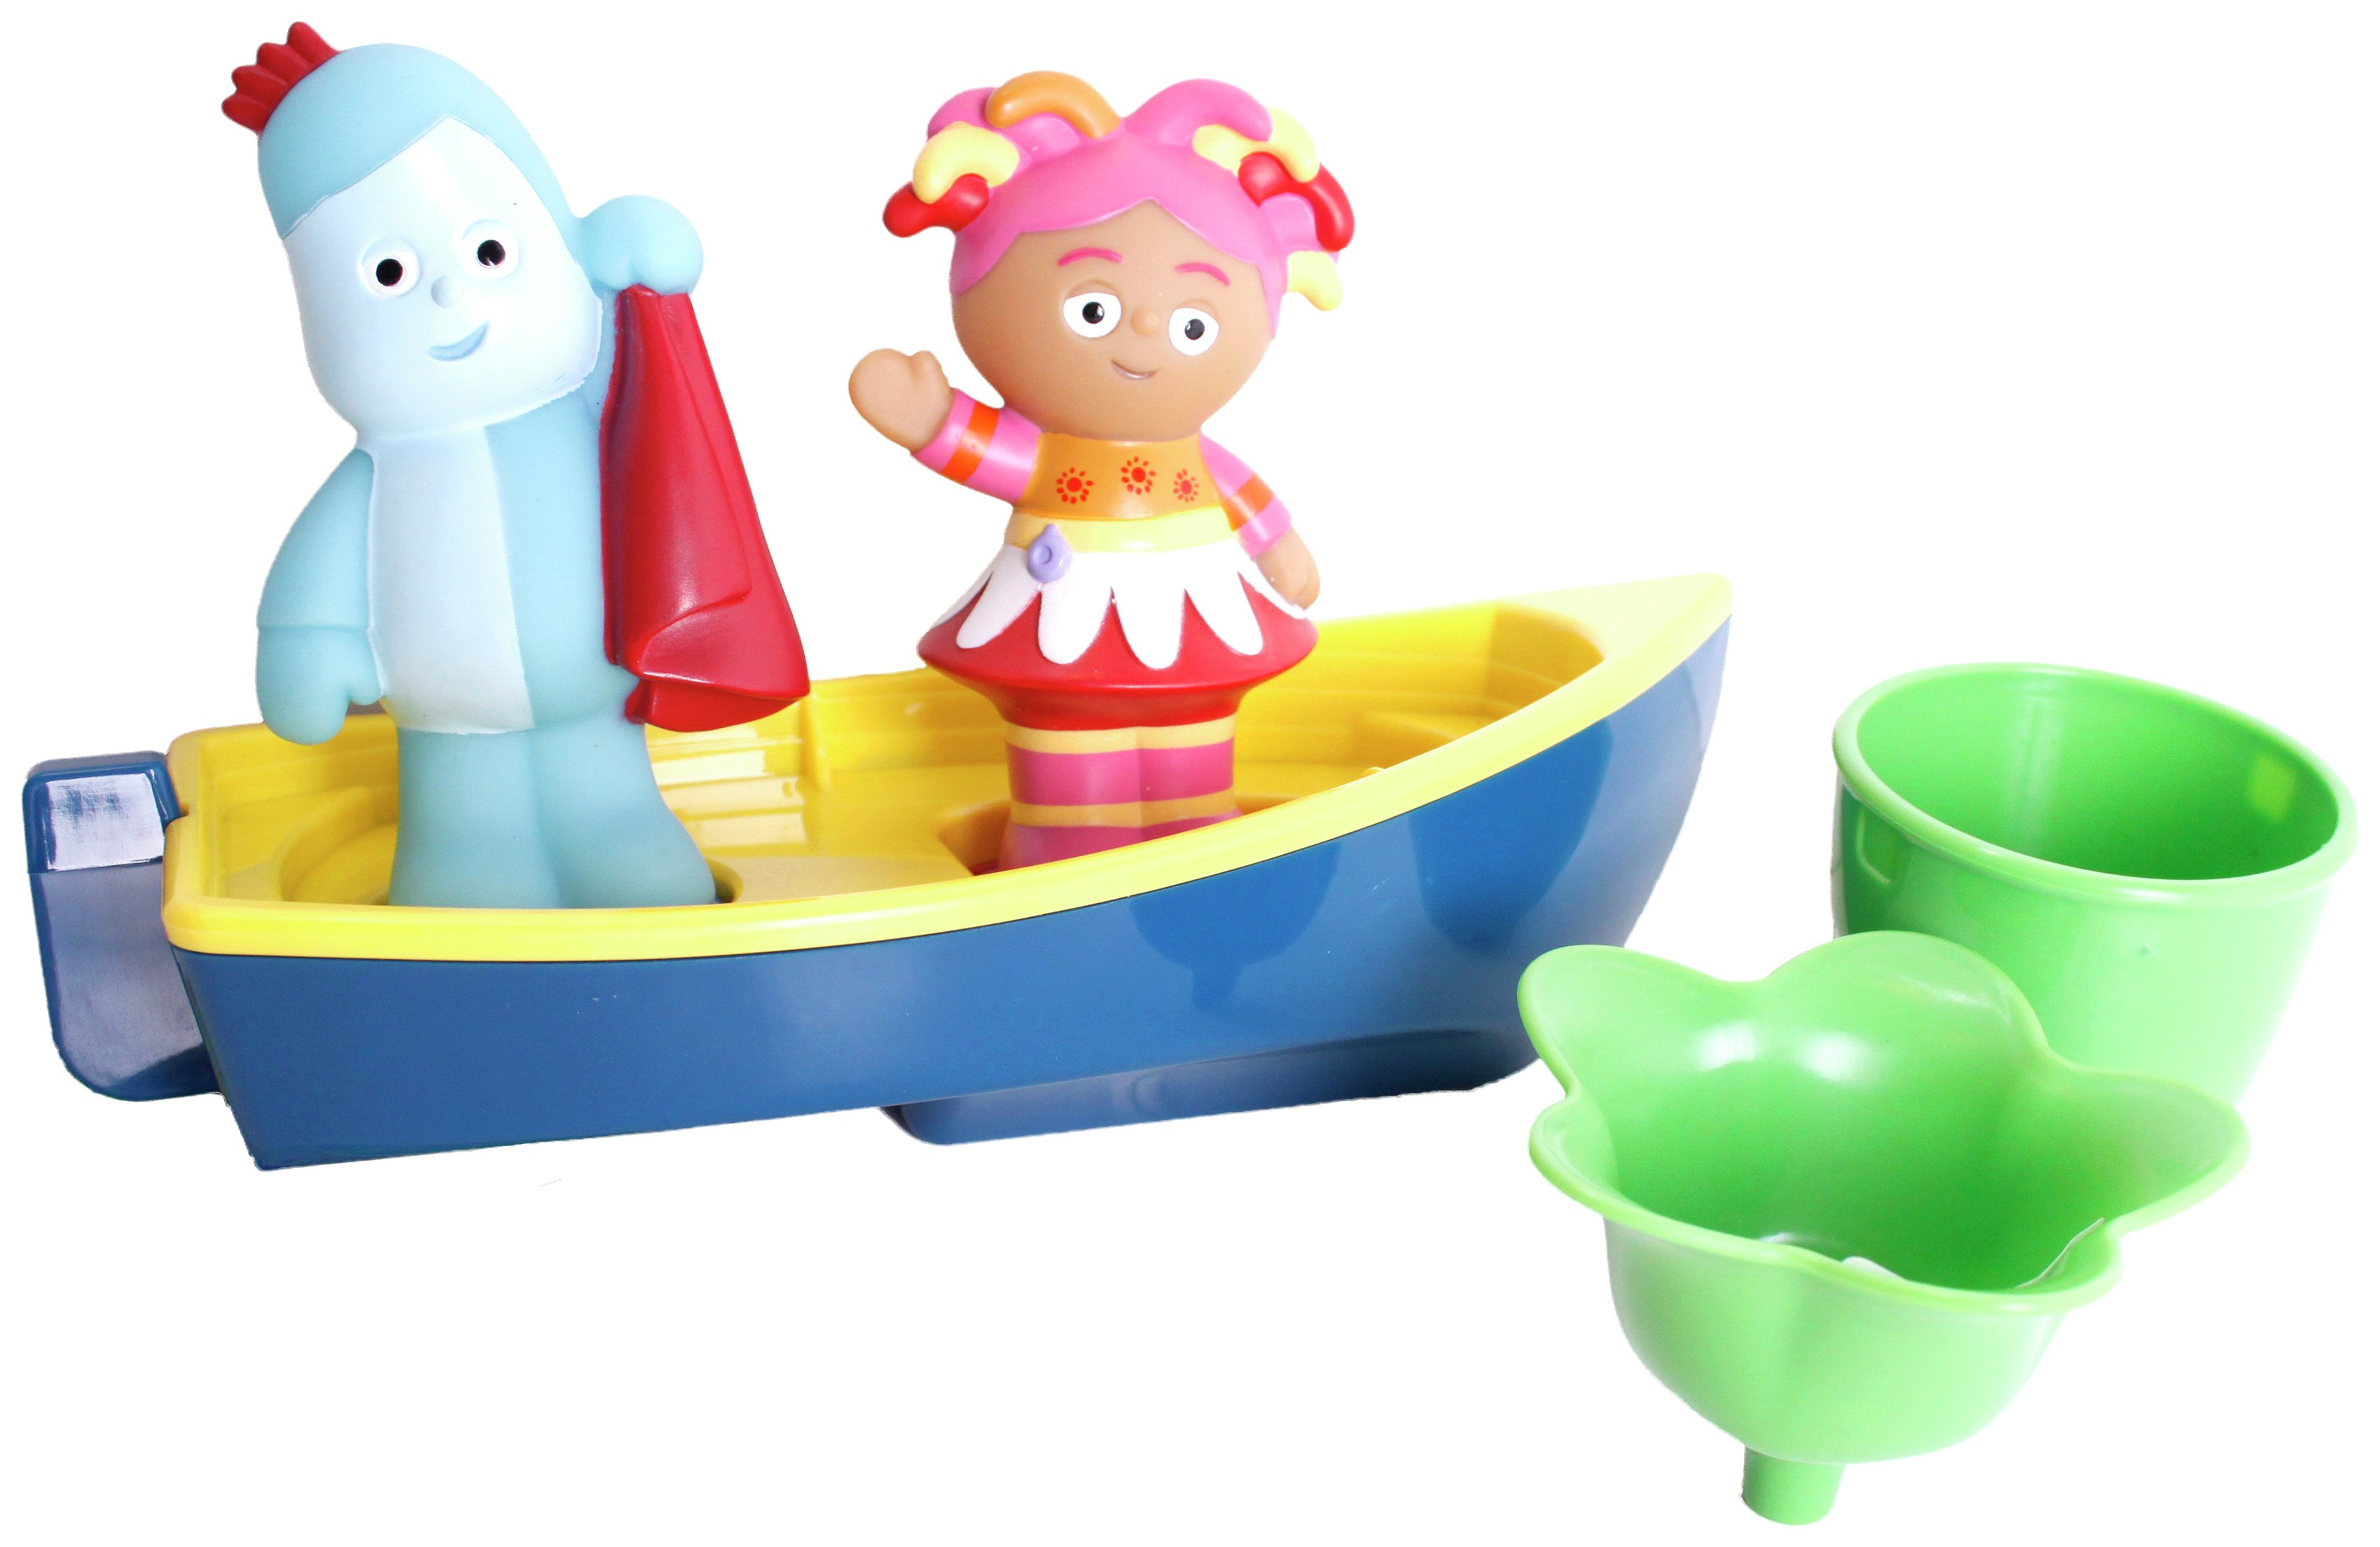 Image of In The Night Garden - Igglepiggles Floaty Boat Playset